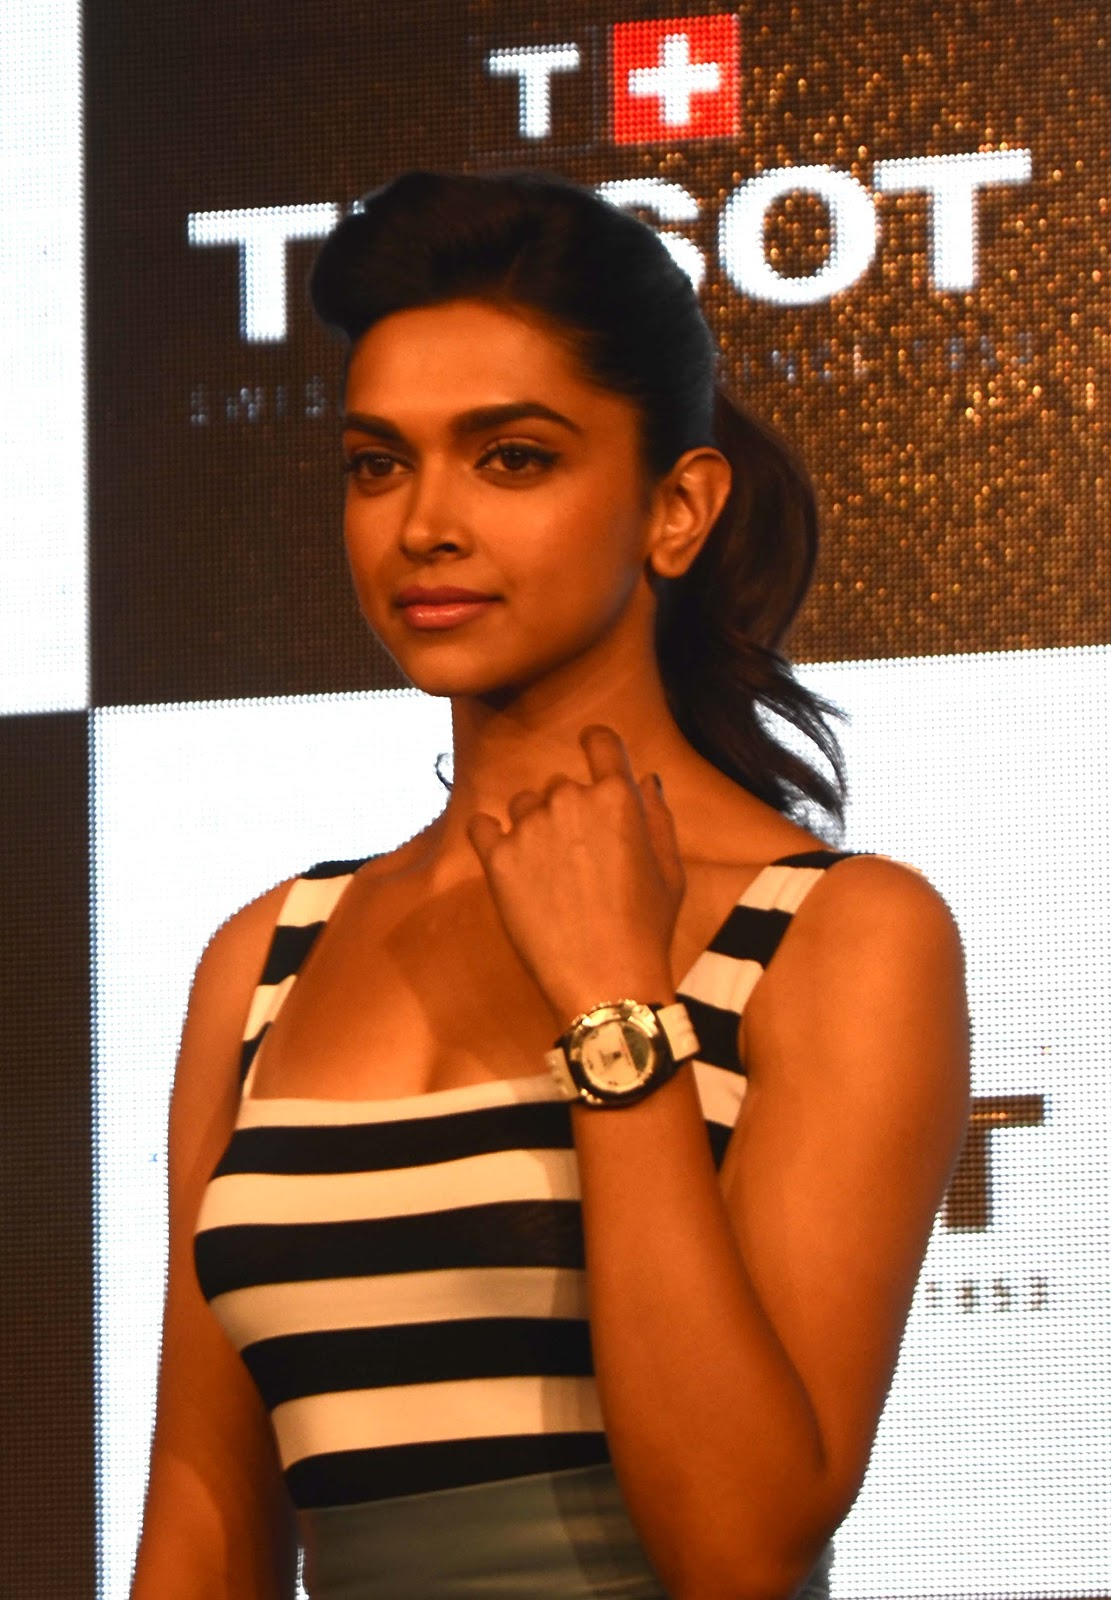 Deepika Padukone Looks Super Hot At The Launch Of New Collection By Tissot Watches